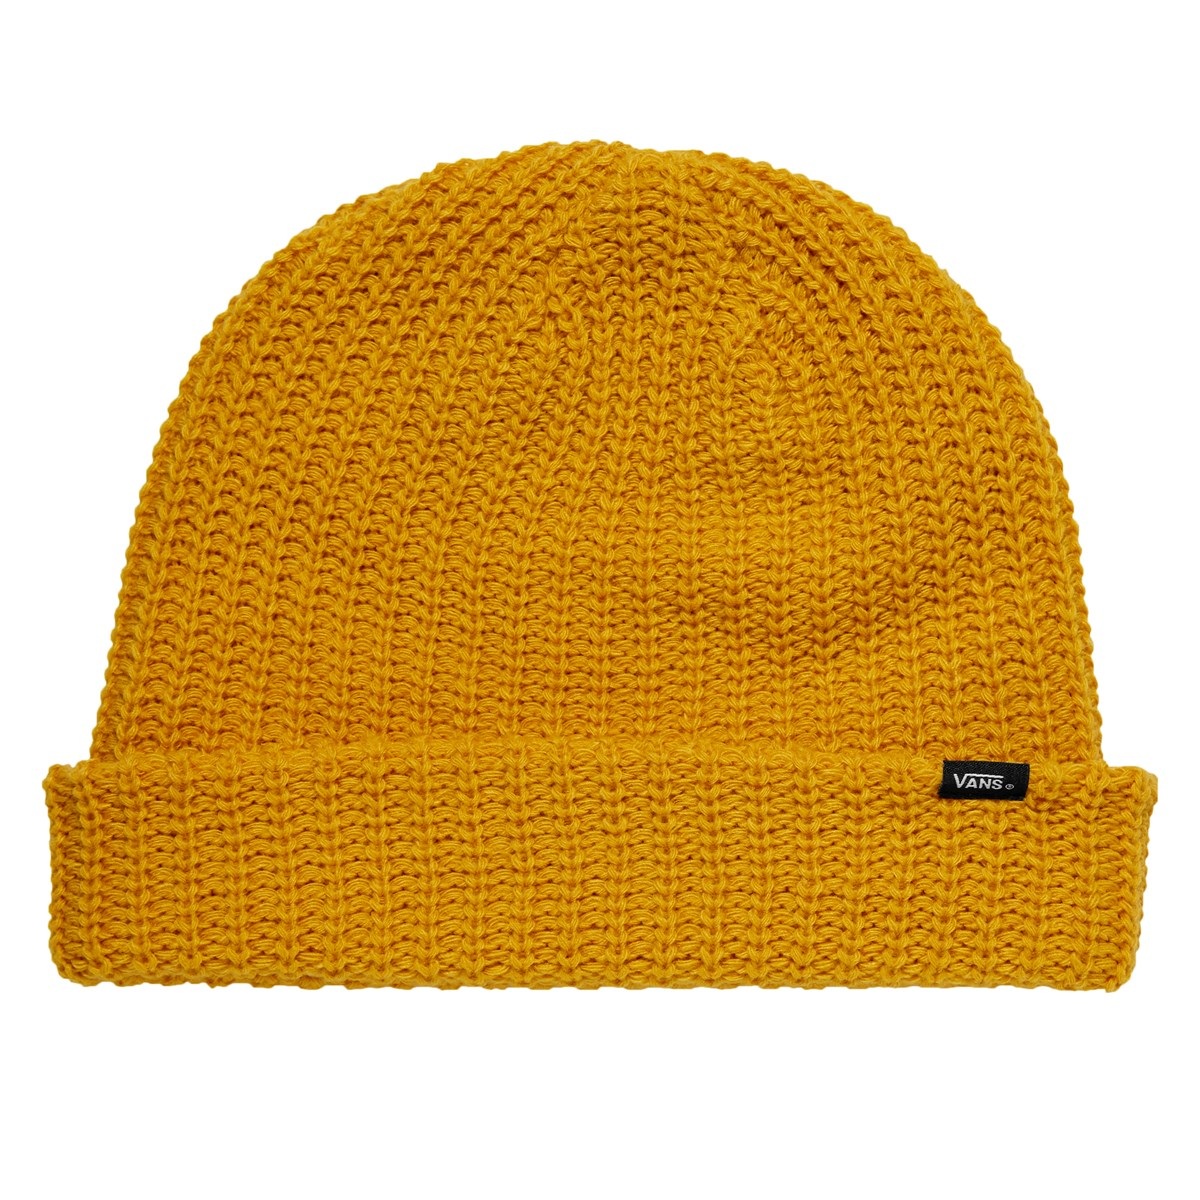 Mismoedig Beanie in Yellow